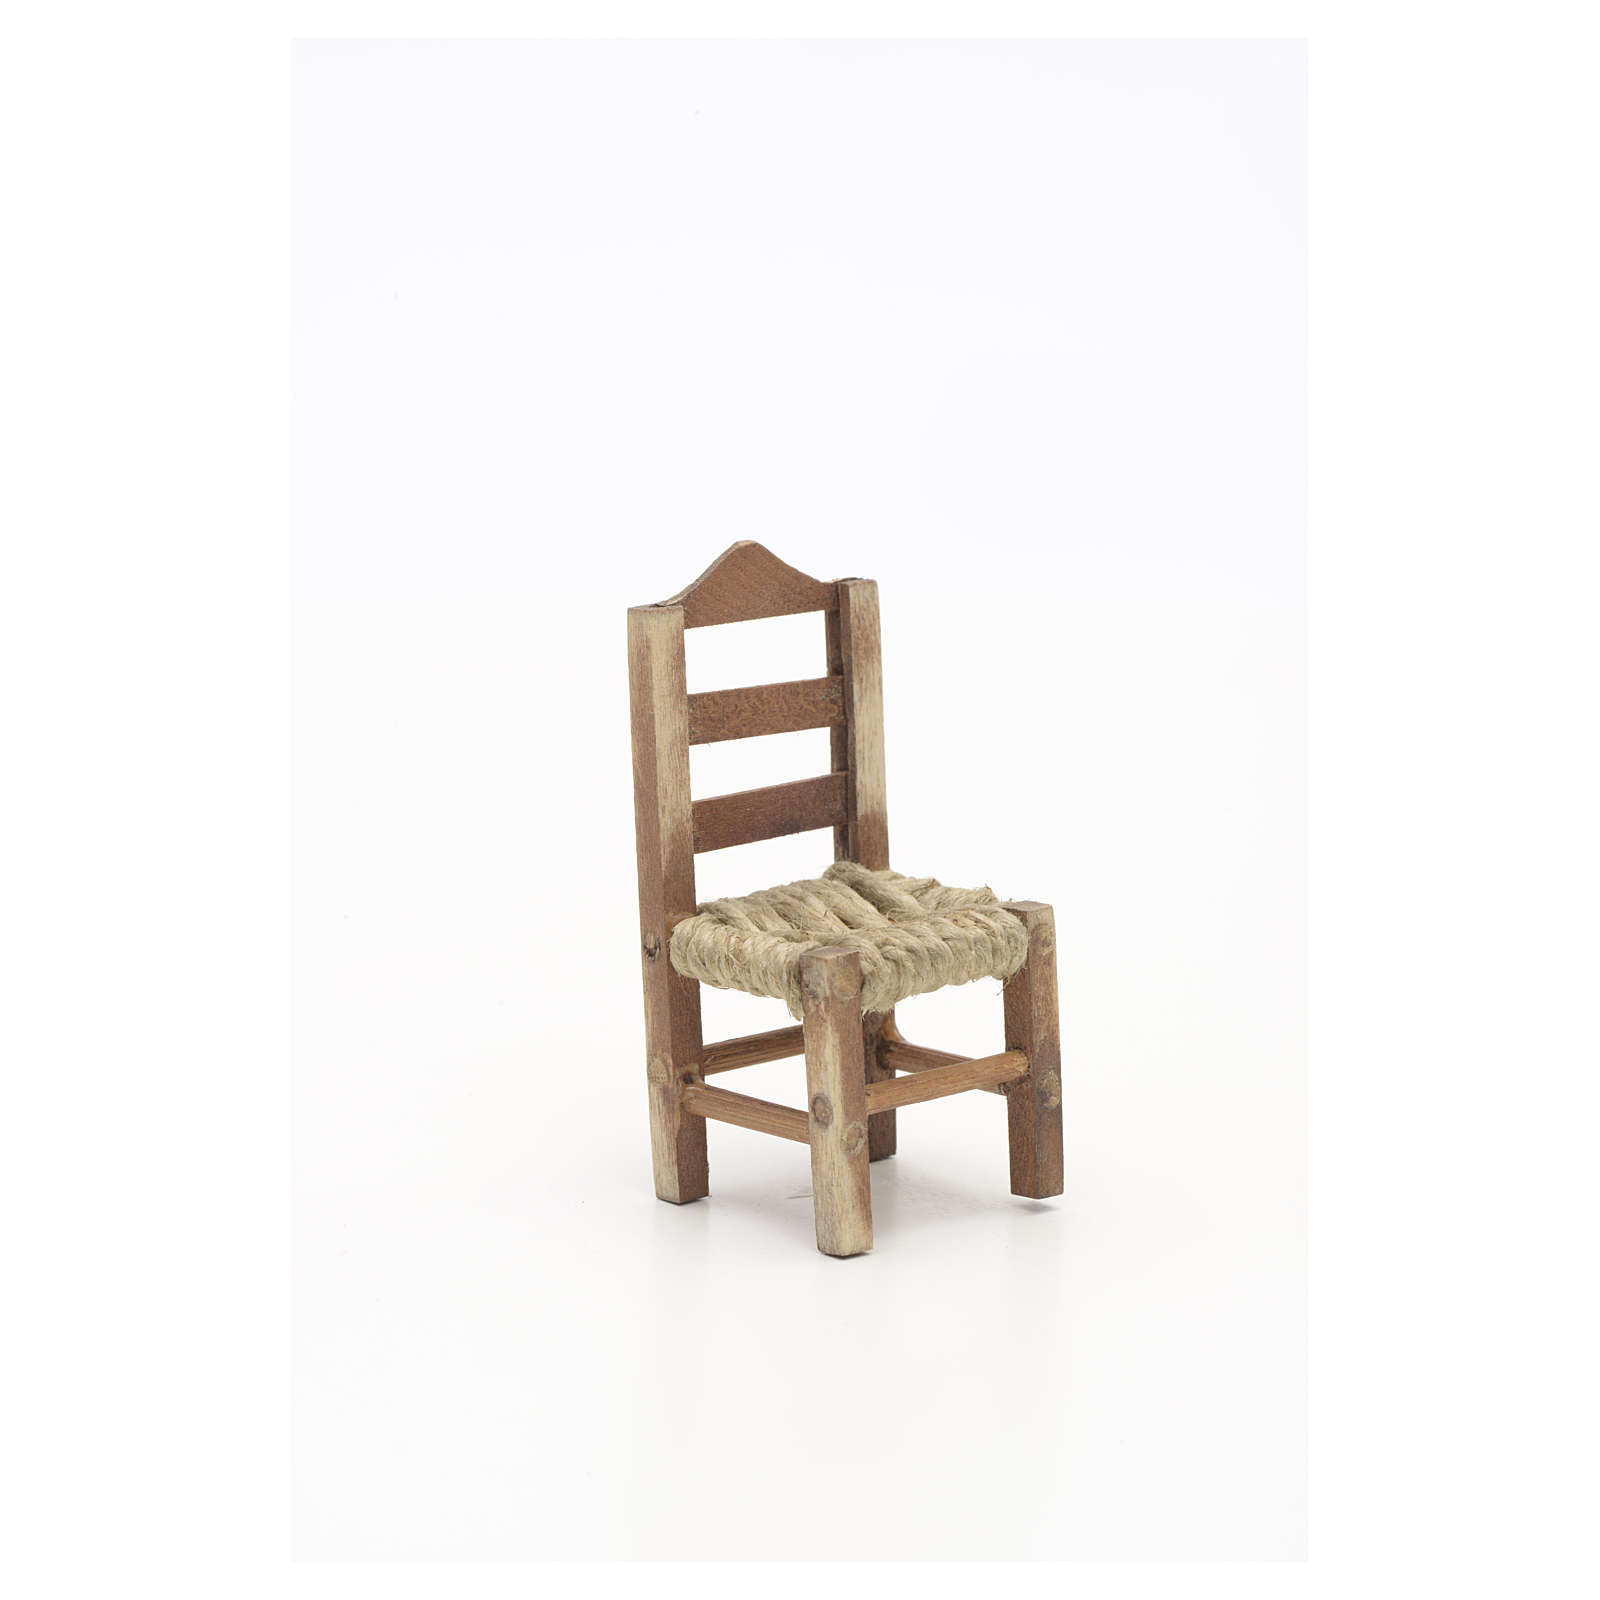 Neapolitan Nativity scene accessory, chair 6cm 4